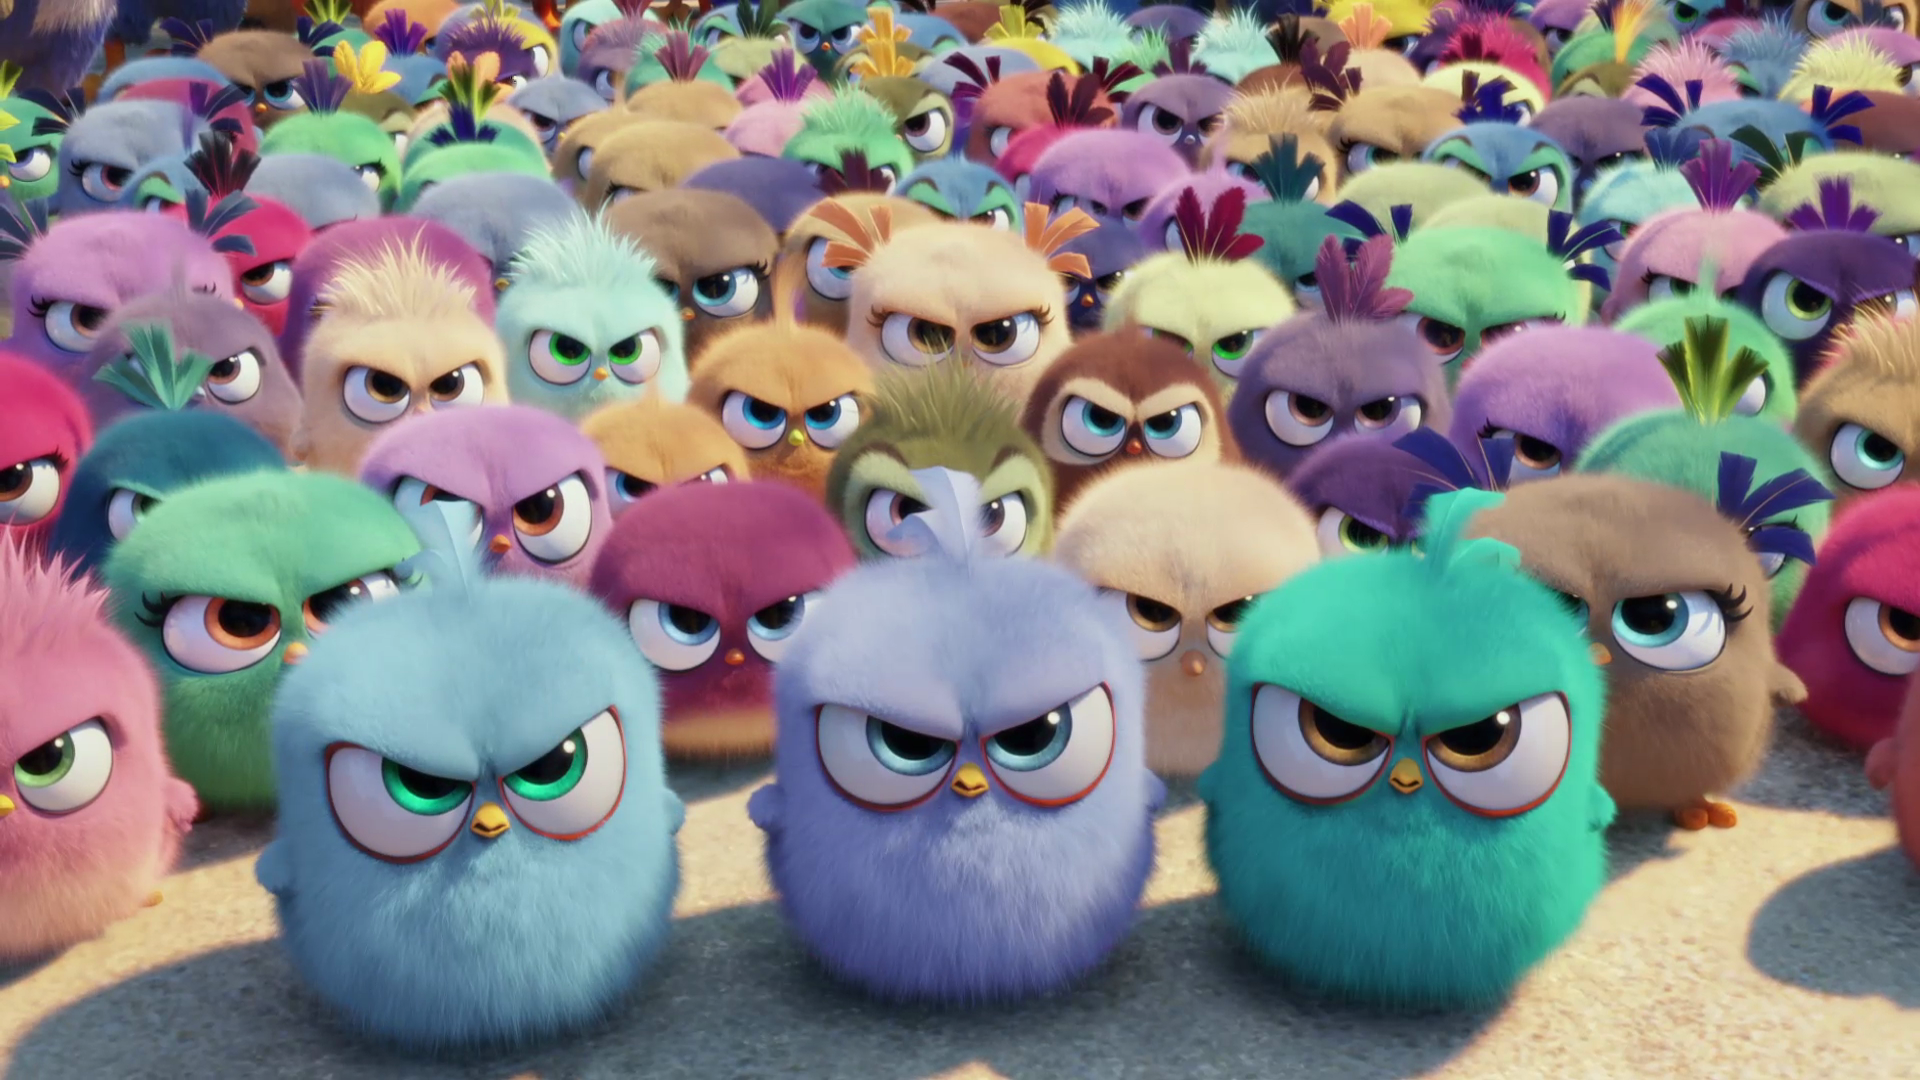 The Angry Birds Movie Hd Gallery And First Trailer - Angry Birds Movies , HD Wallpaper & Backgrounds